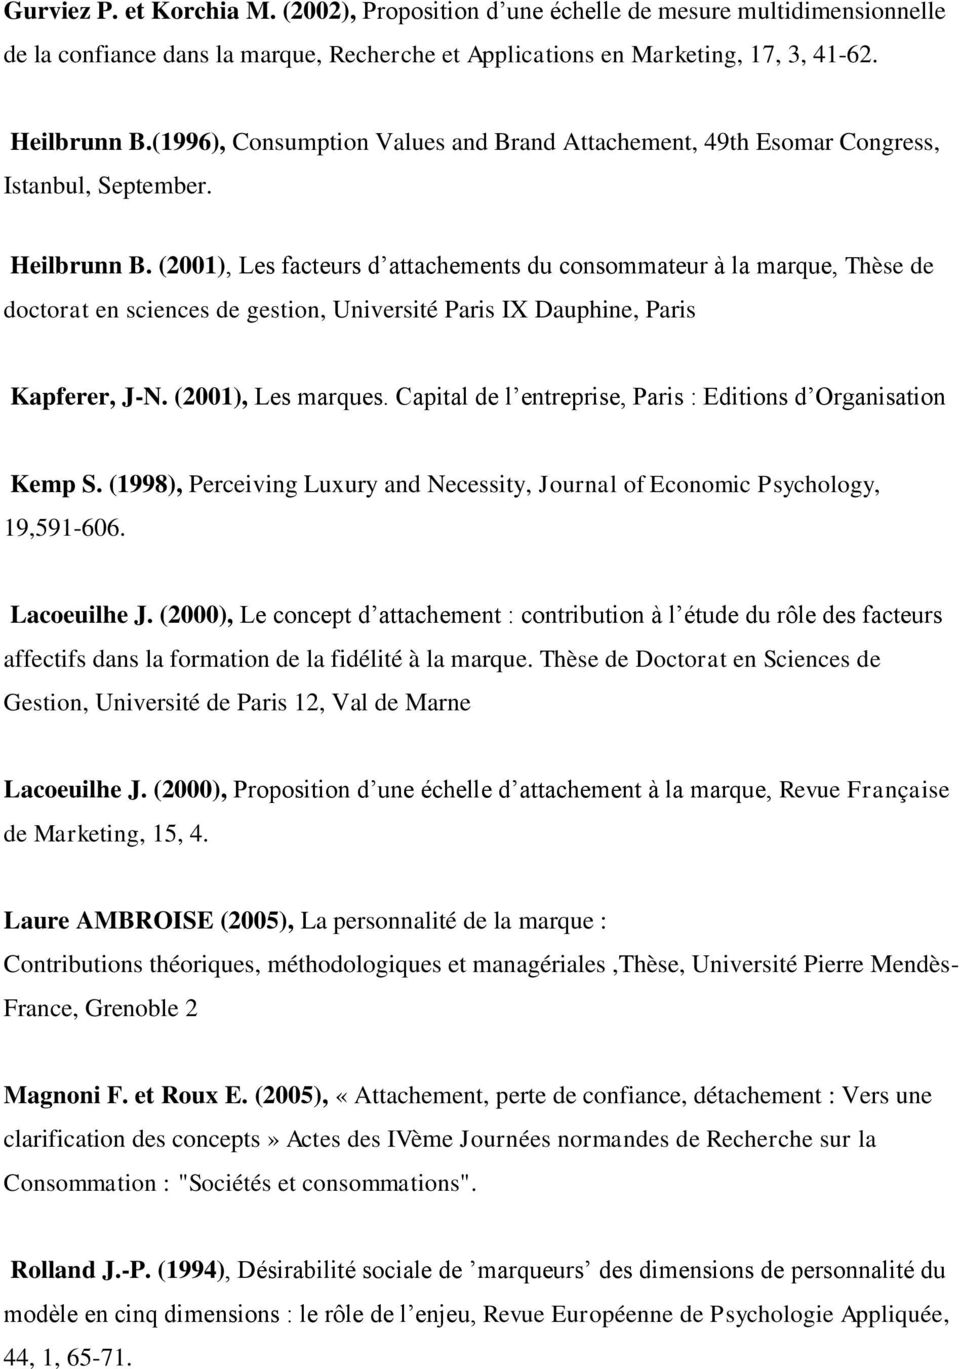 (2001), Les facteurs d attachements du consommateur à la marque, Thèse de doctorat en sciences de gestion, Université Paris IX Dauphine, Paris Kapferer, J-N. (2001), Les marques.